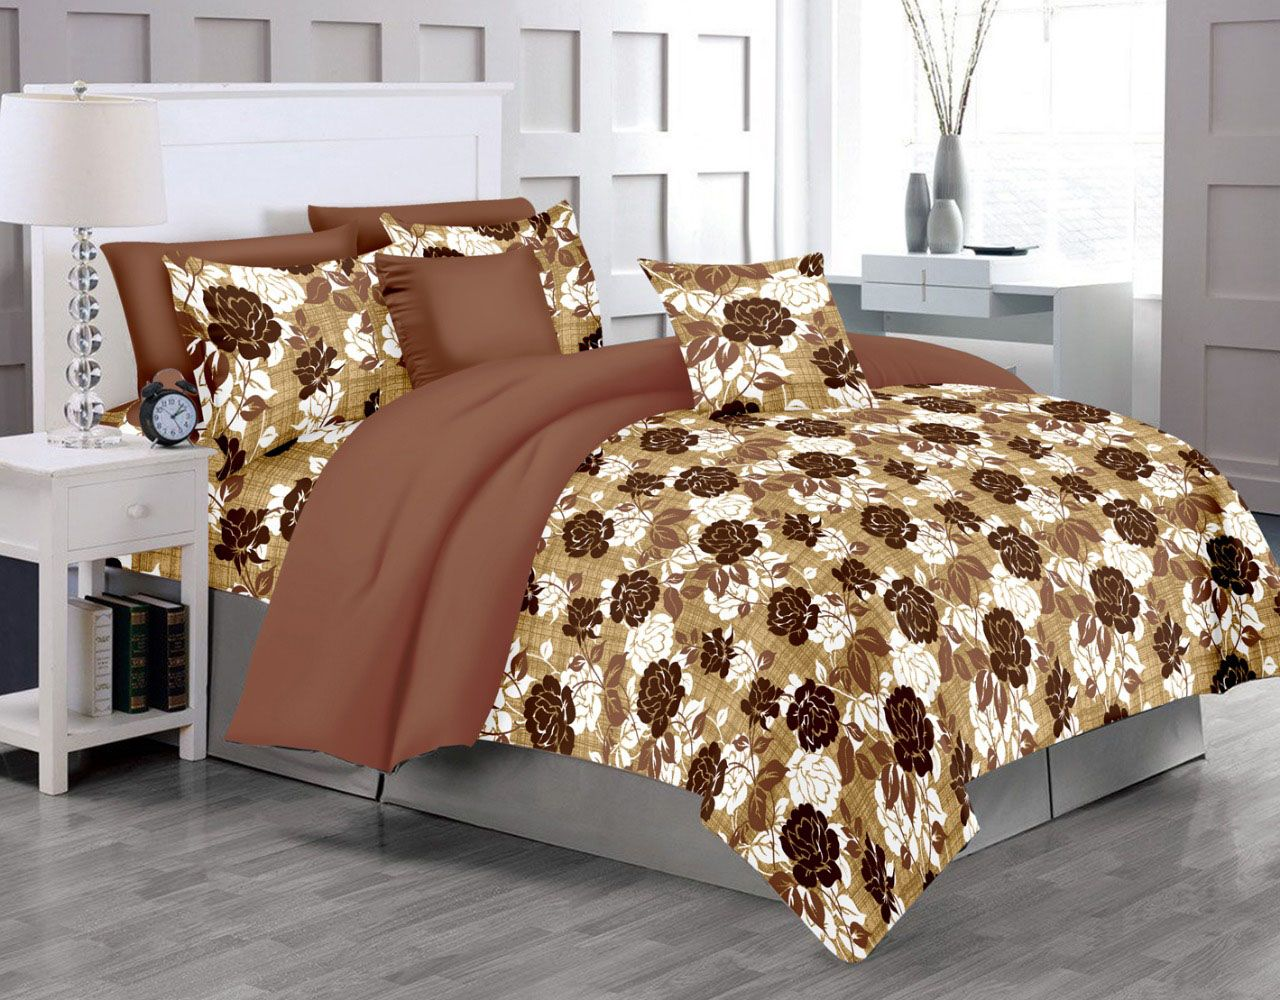 Pin On Beddings